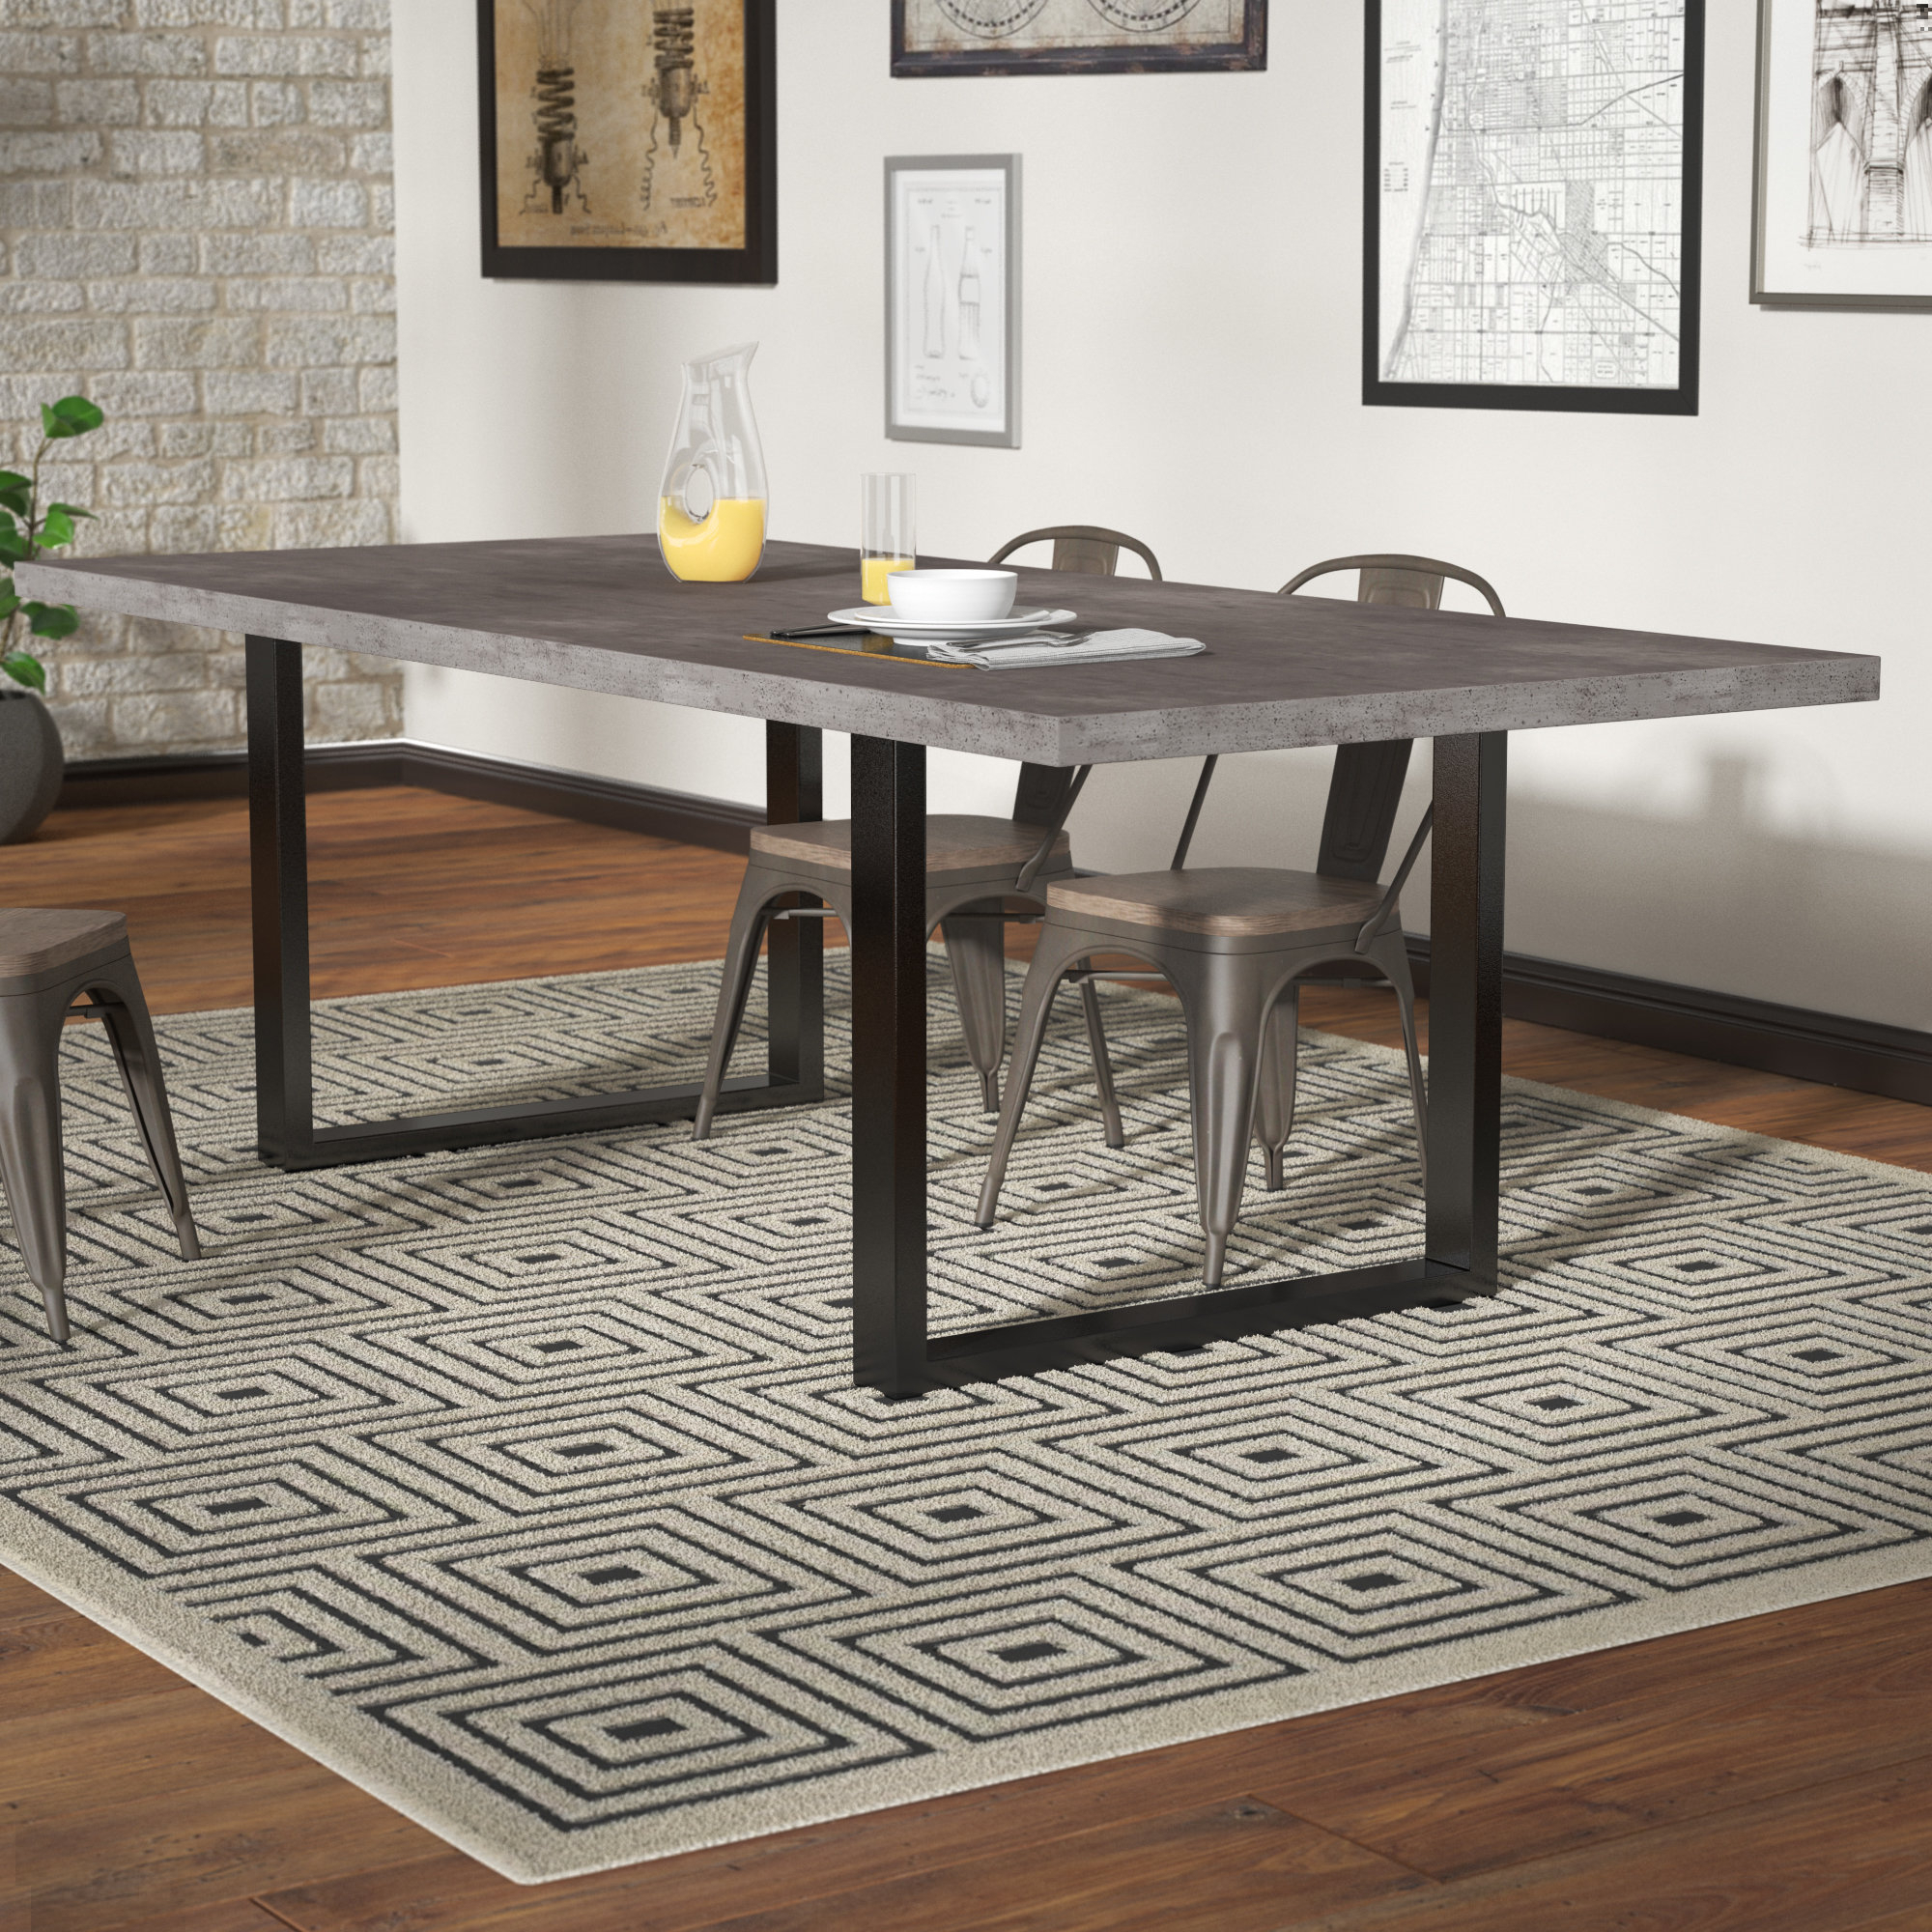 Famous Rossi 5 Piece Dining Sets In Trent Austin Design Carnarvon Concrete Dining Table & Reviews (View 3 of 25)